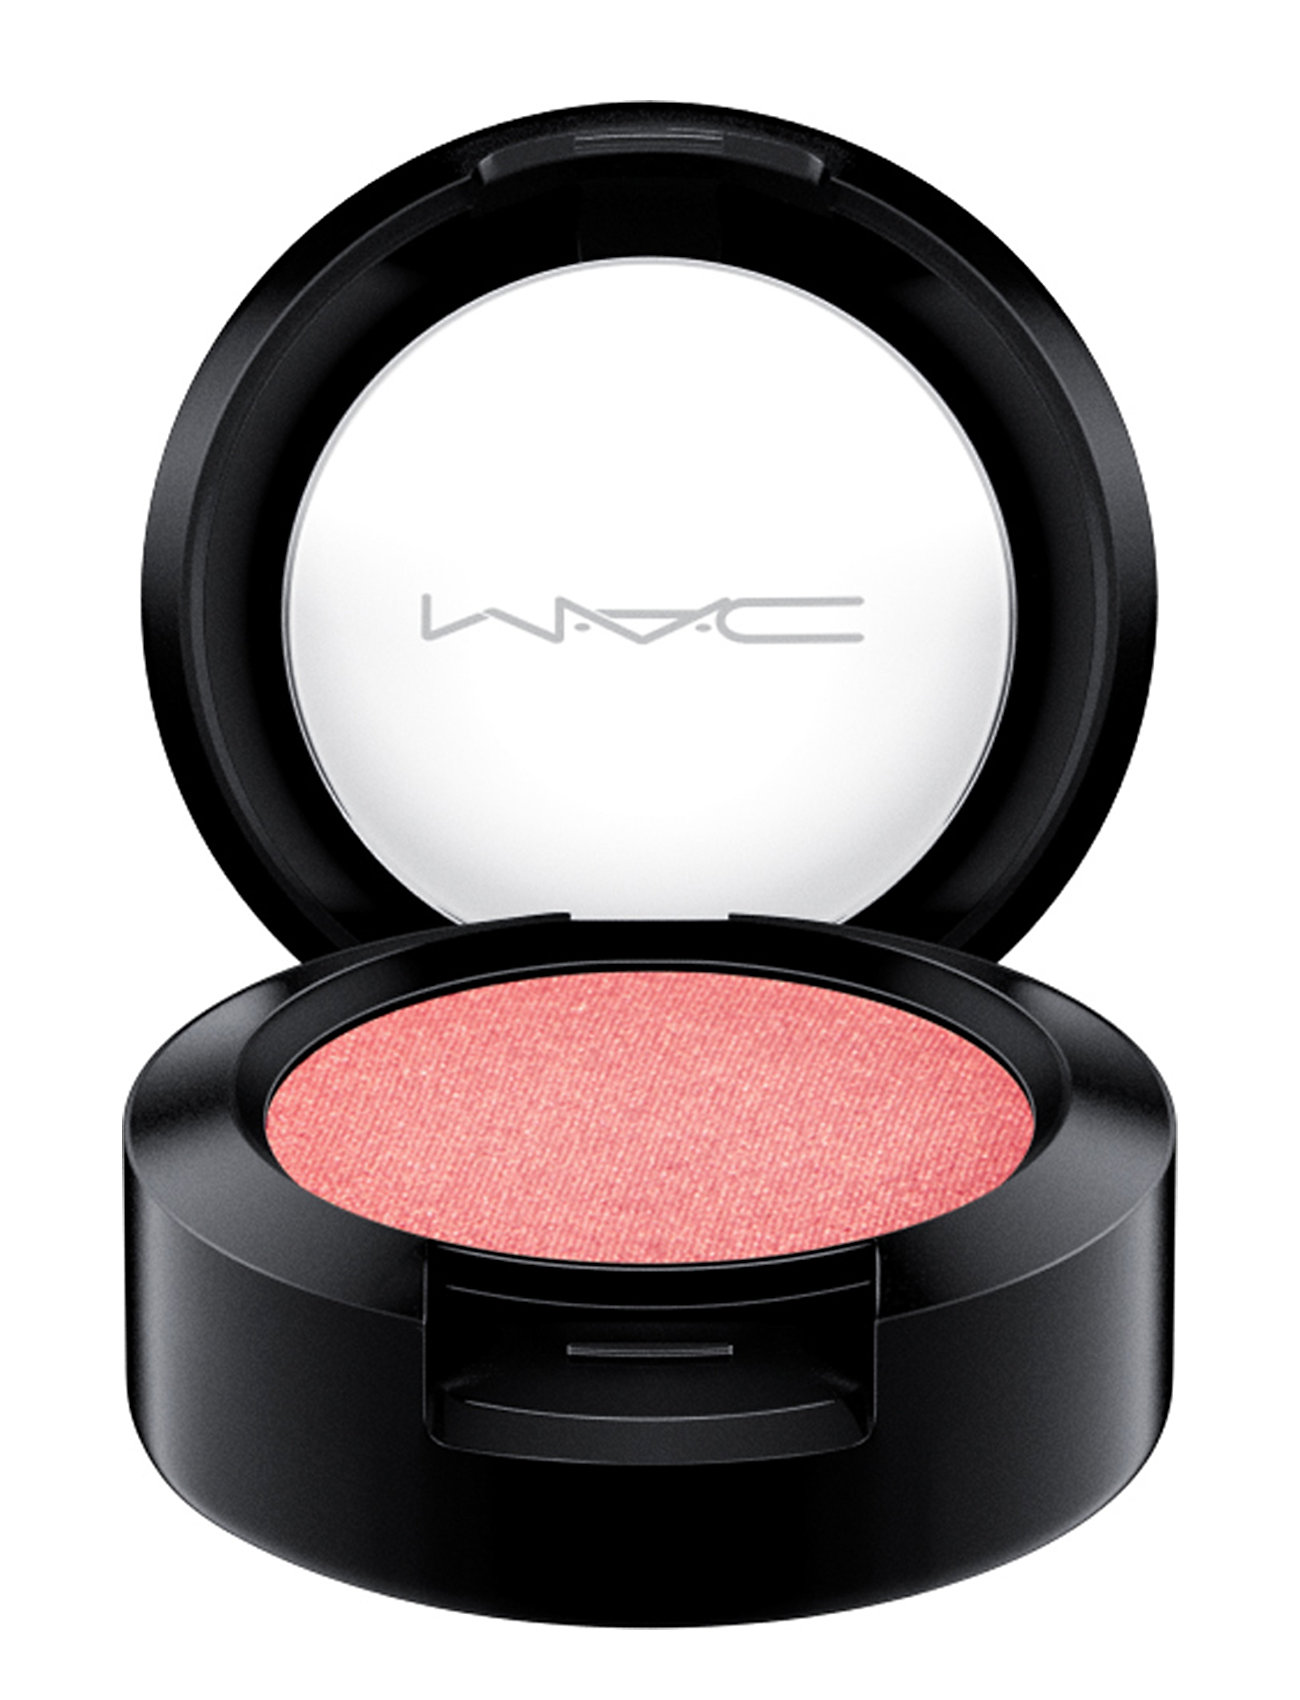 Image of Small Eye Shadow Beauty WOMEN Makeup Eyes Eyeshadow - Not Palettes Blå M.A.C. (3260672997)